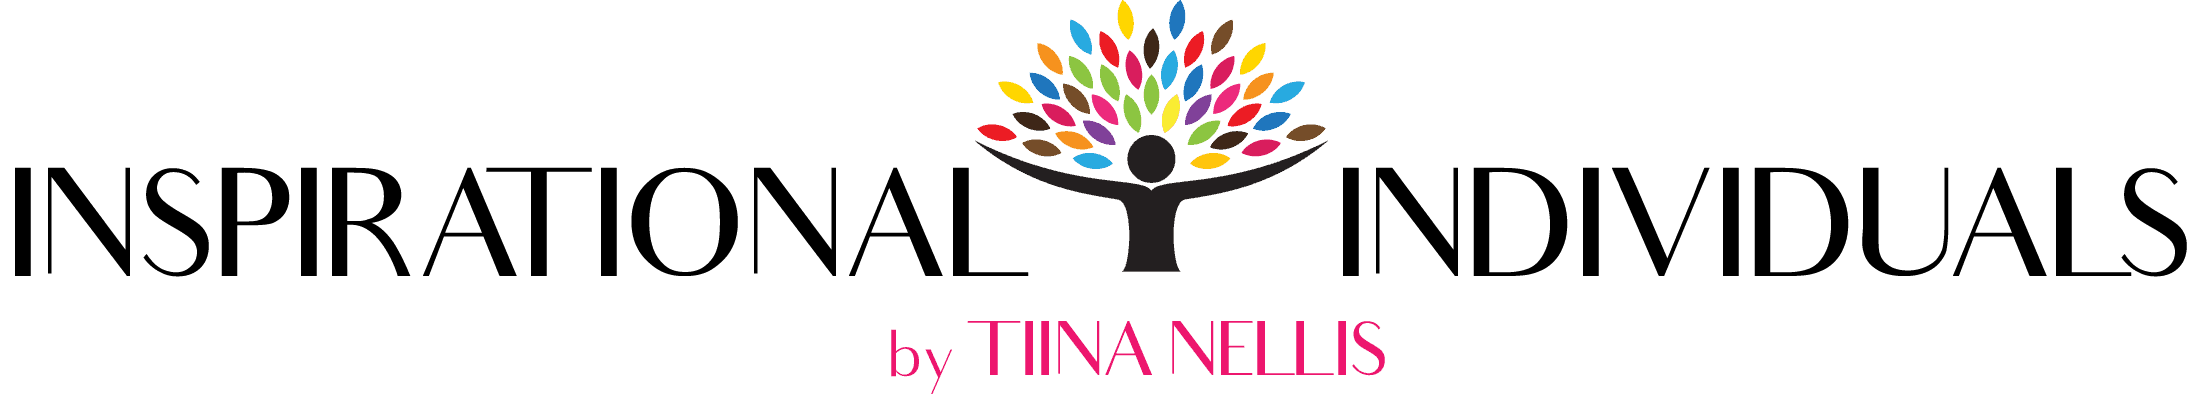 Tiina Nellis's Website